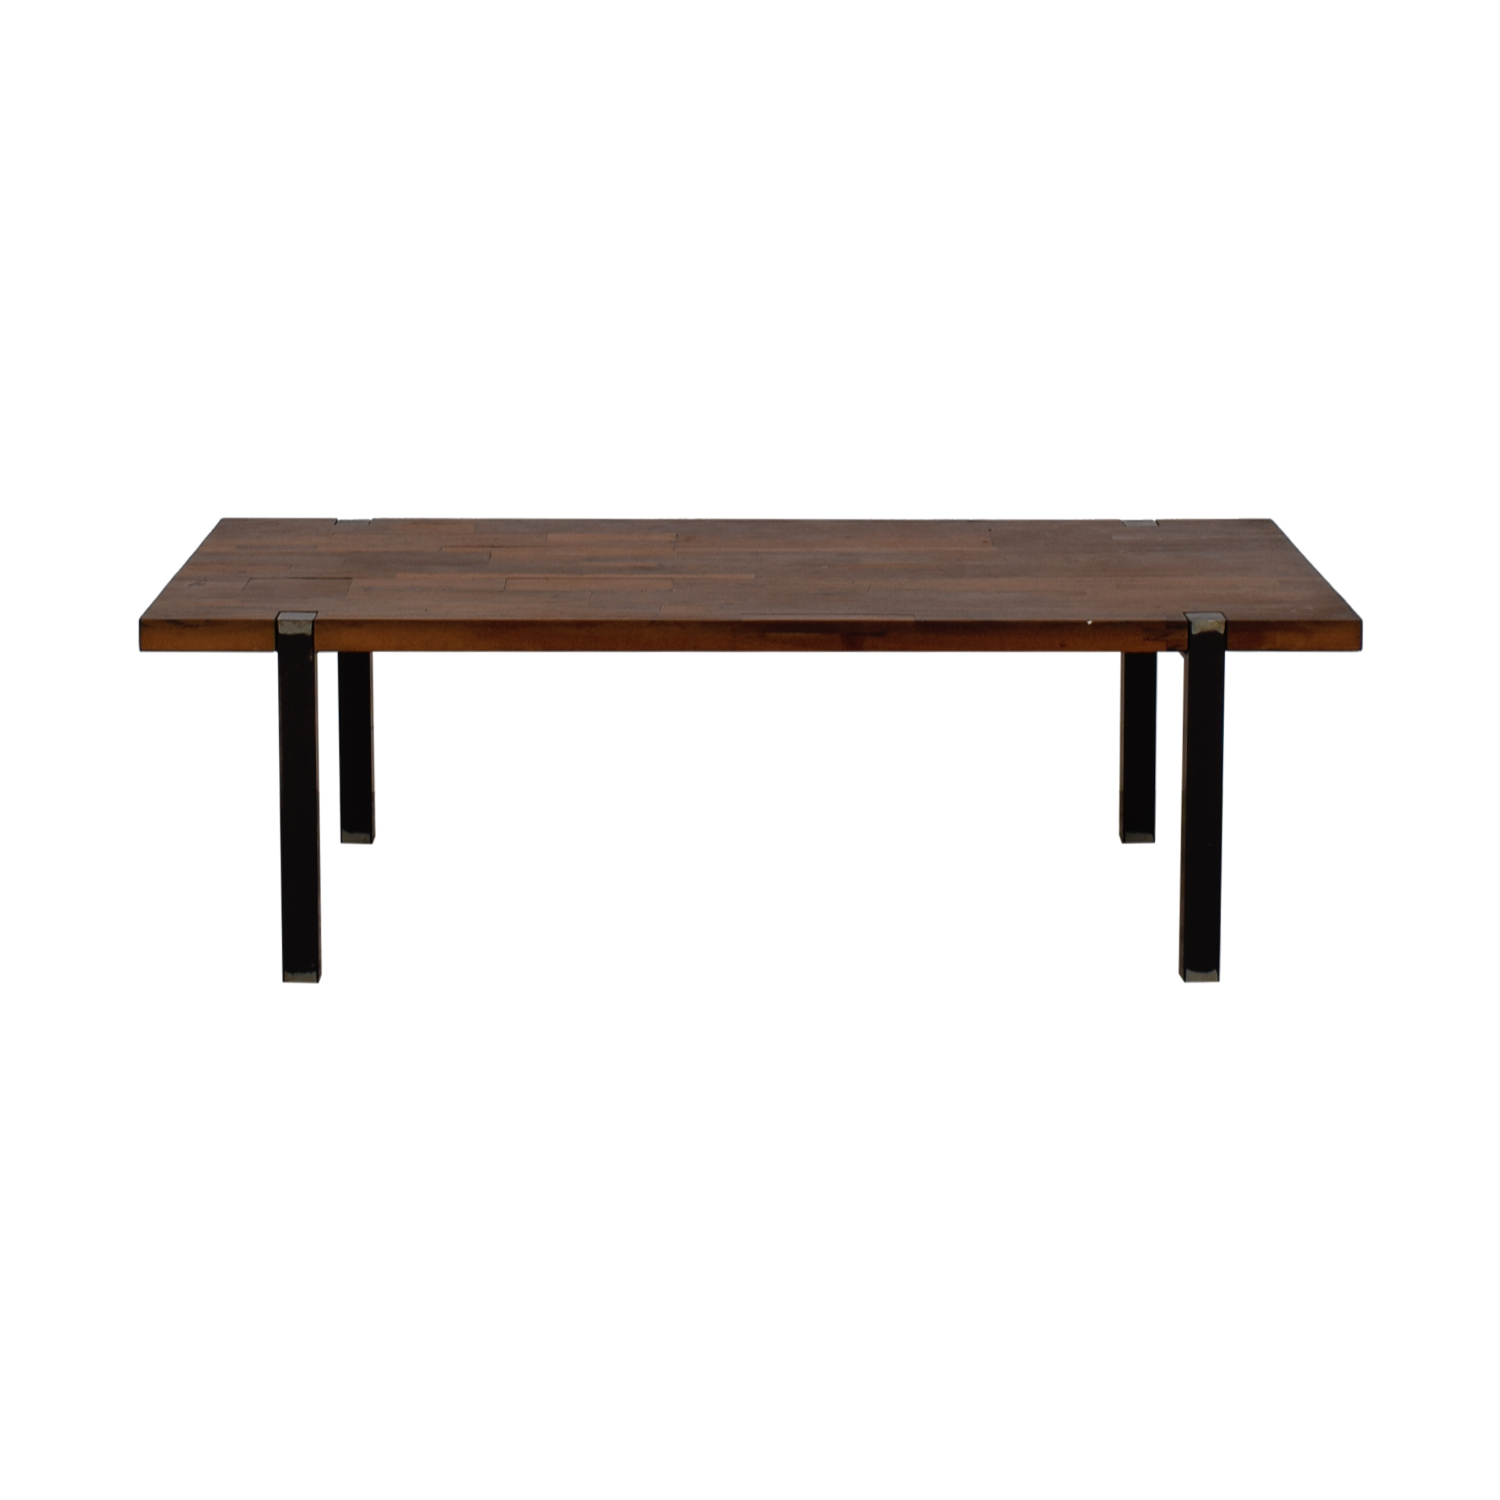 CB2 CB2 Reclaimed Railroad Wood Coffee Table nyc